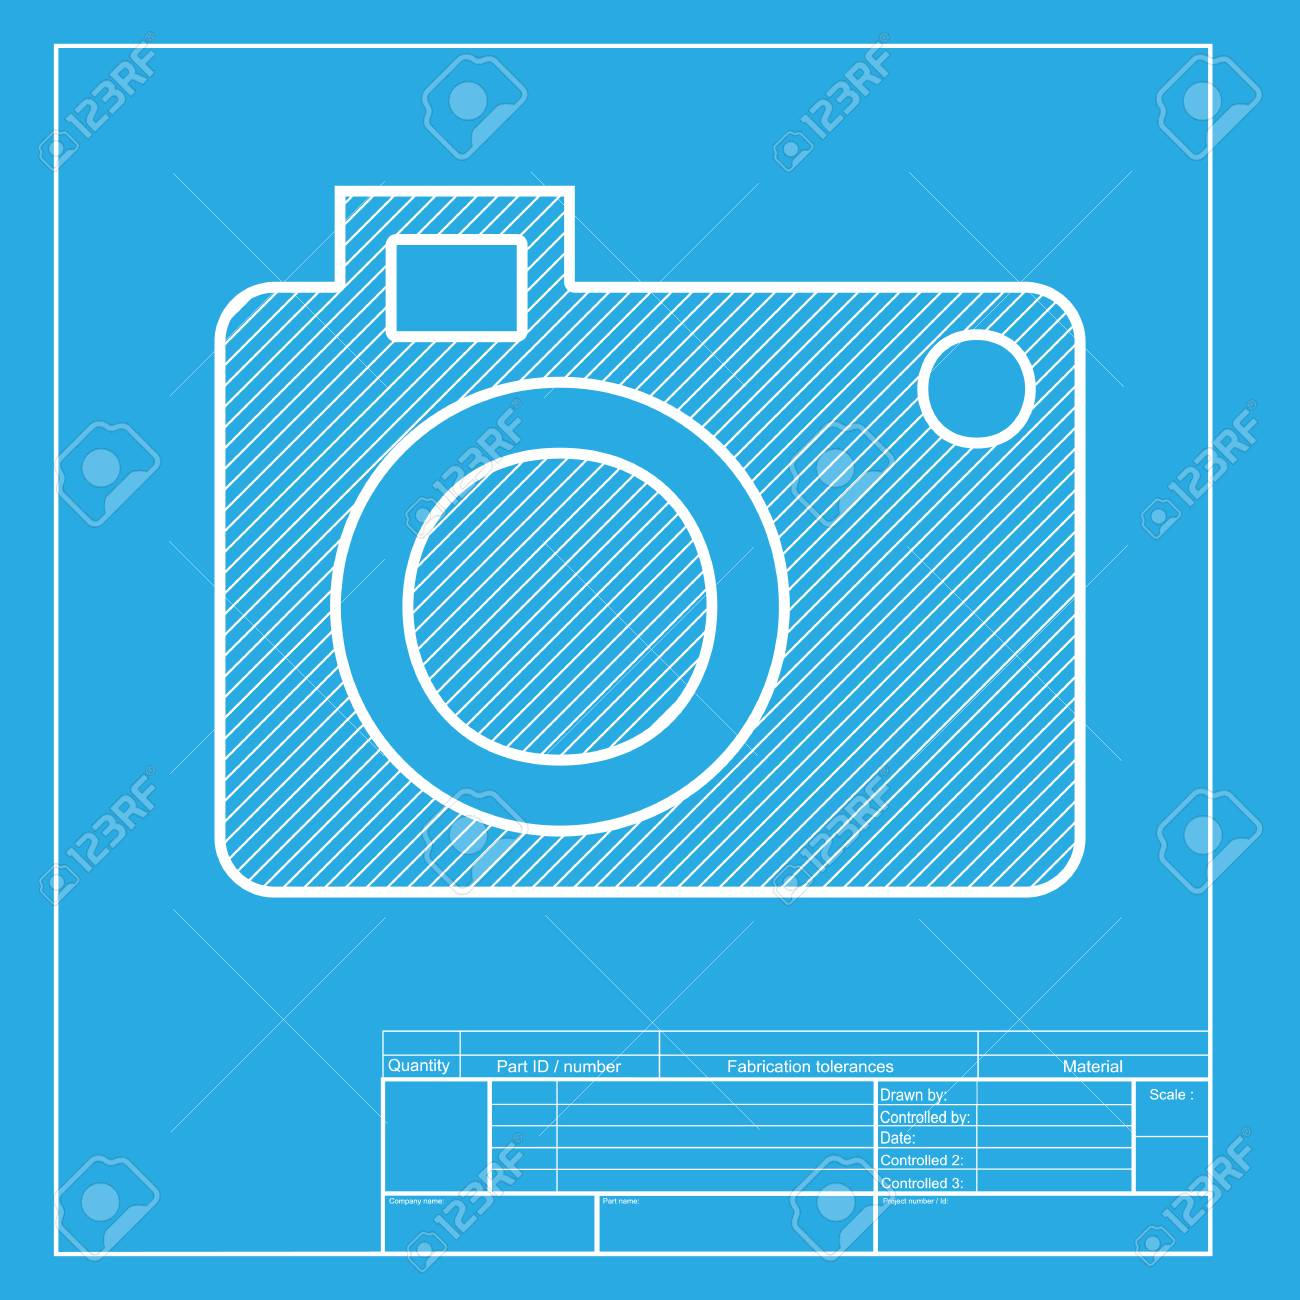 Digital camera sign white section of icon on blueprint template digital camera sign white section of icon on blueprint template stock vector 58755489 malvernweather Choice Image